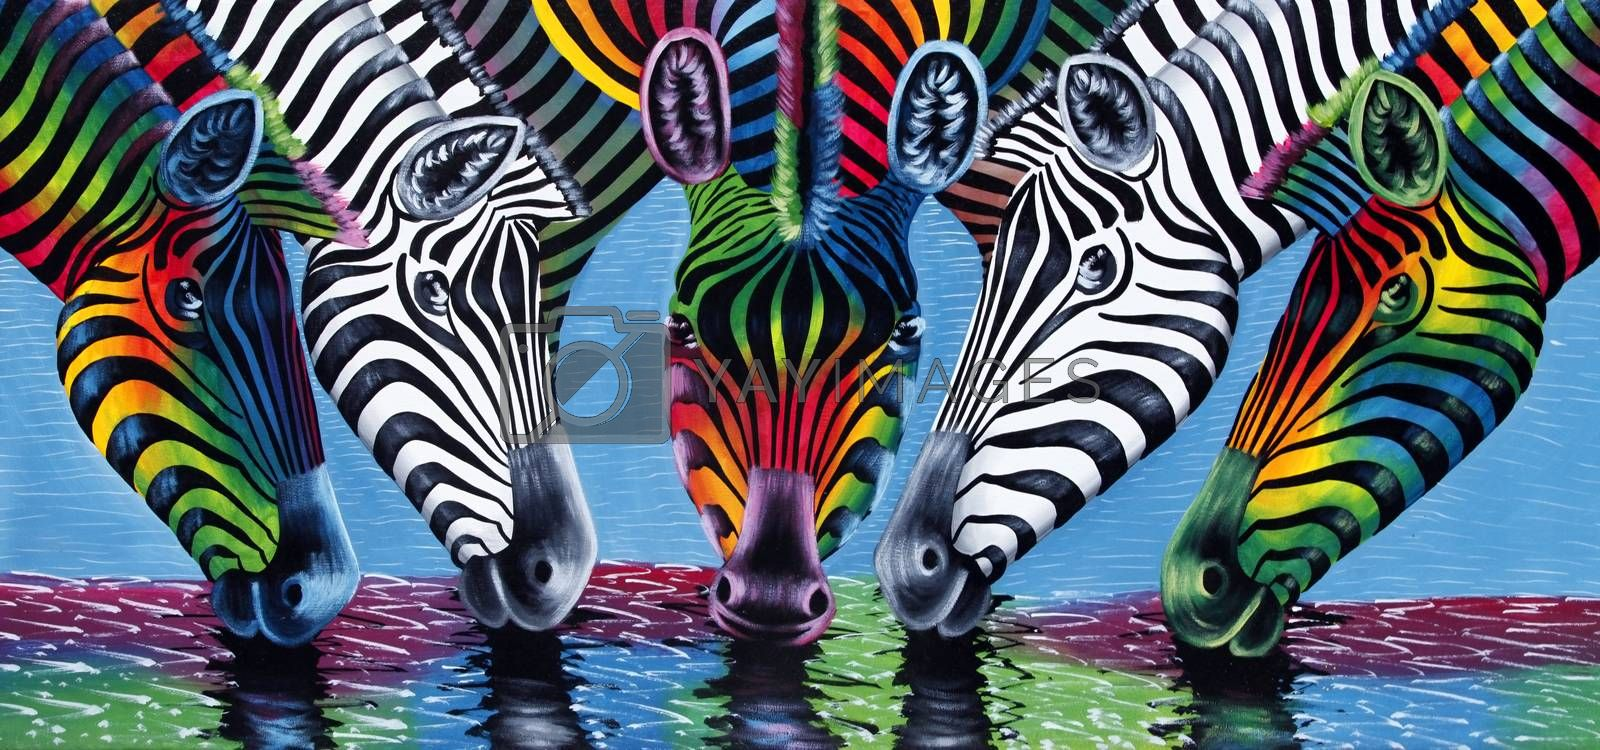 Painting of zebras  by friday